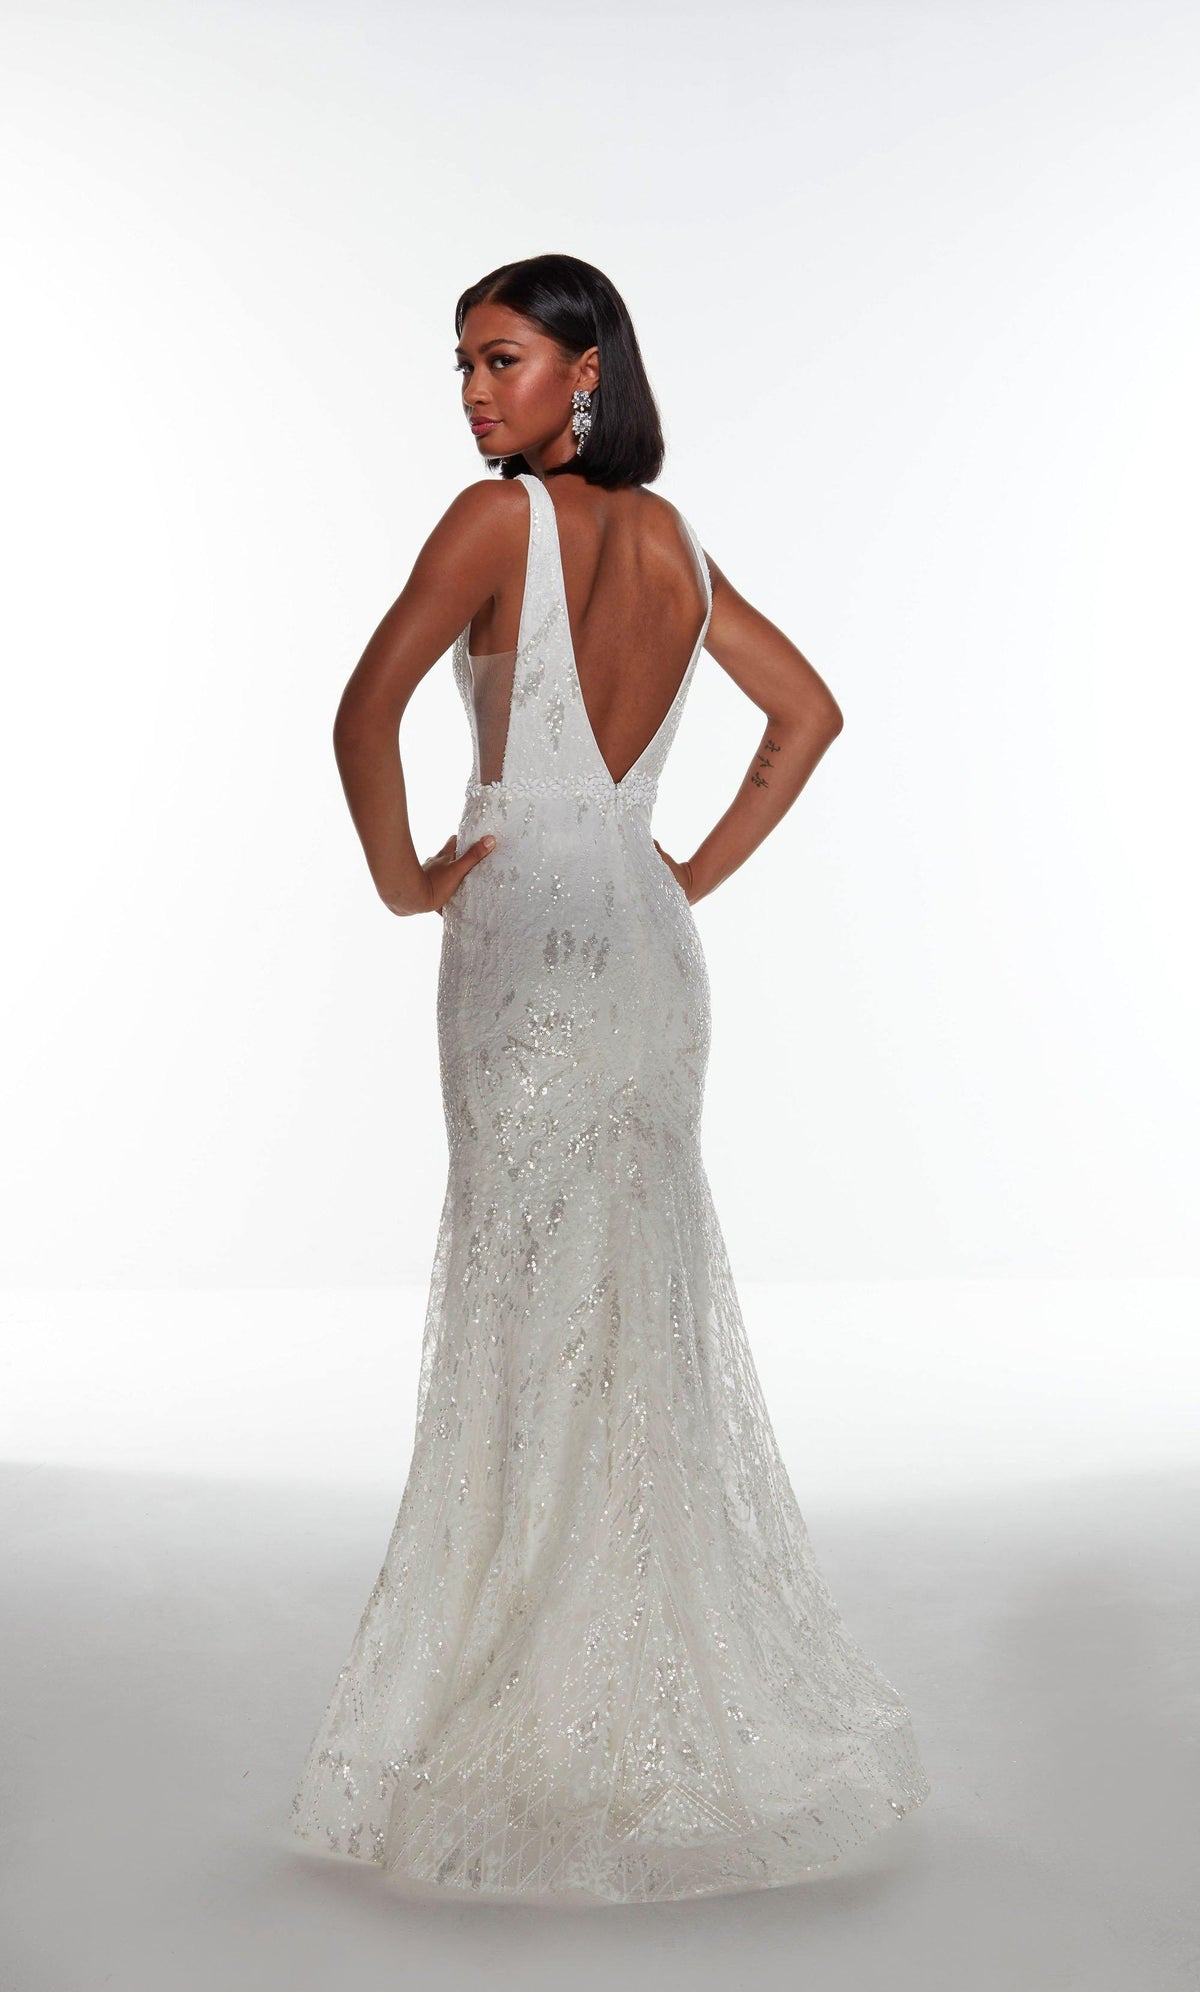 Fully sequin embellished Diamond White colored wedding gown with a V shaped back and a jewel accents at the natural waist